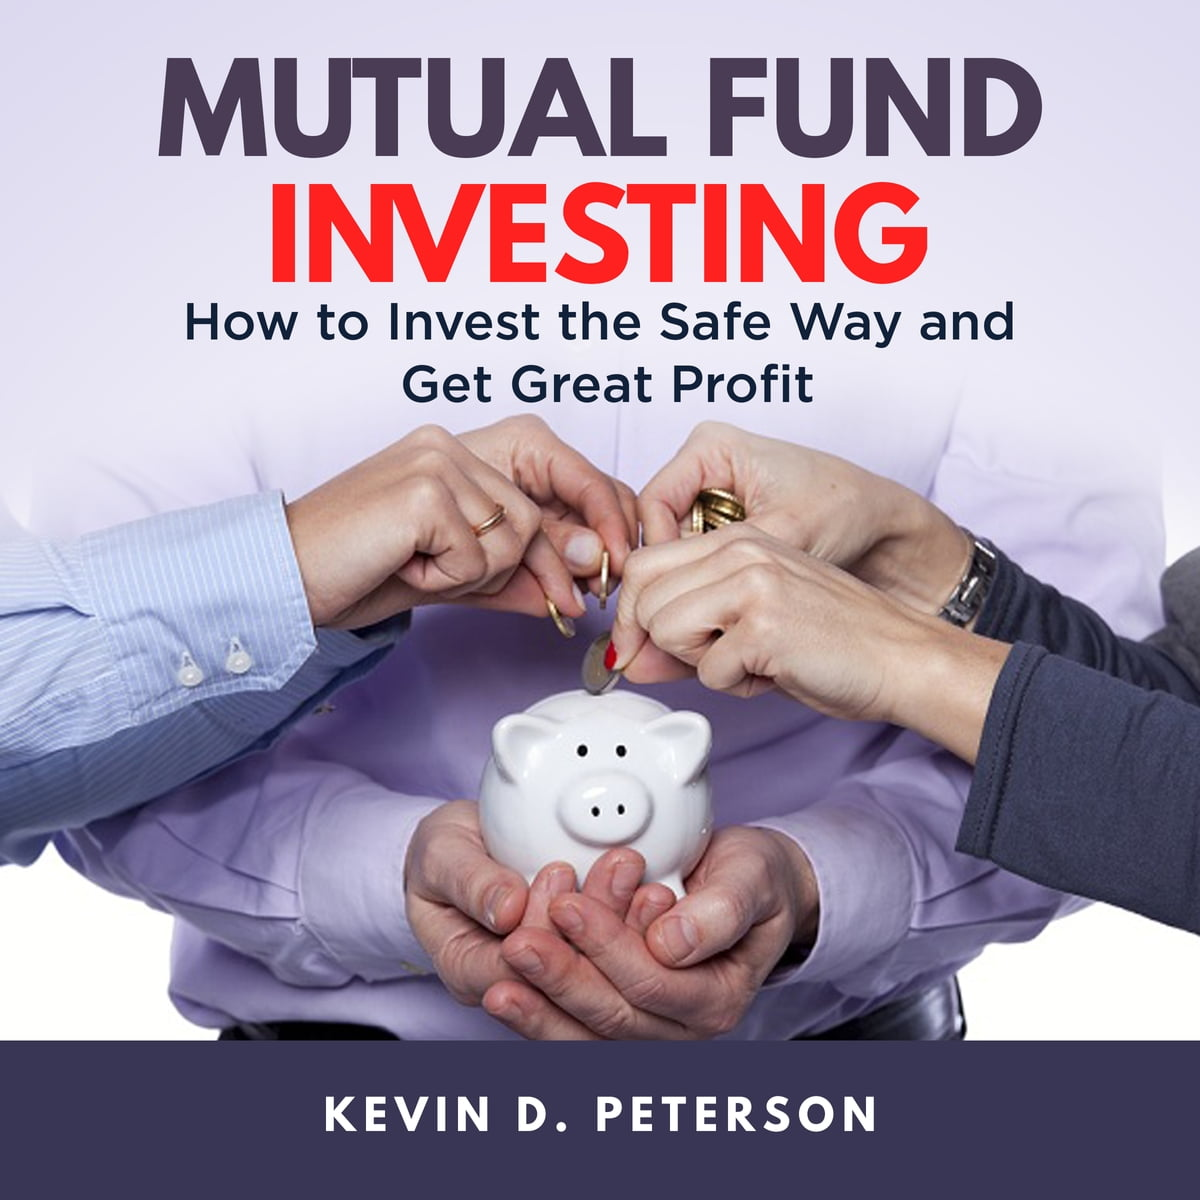 Mutual Fund Investing: How to Invest the Safe Way and Get Great Profits  audiobook by Kevin D  Peterson - Rakuten Kobo